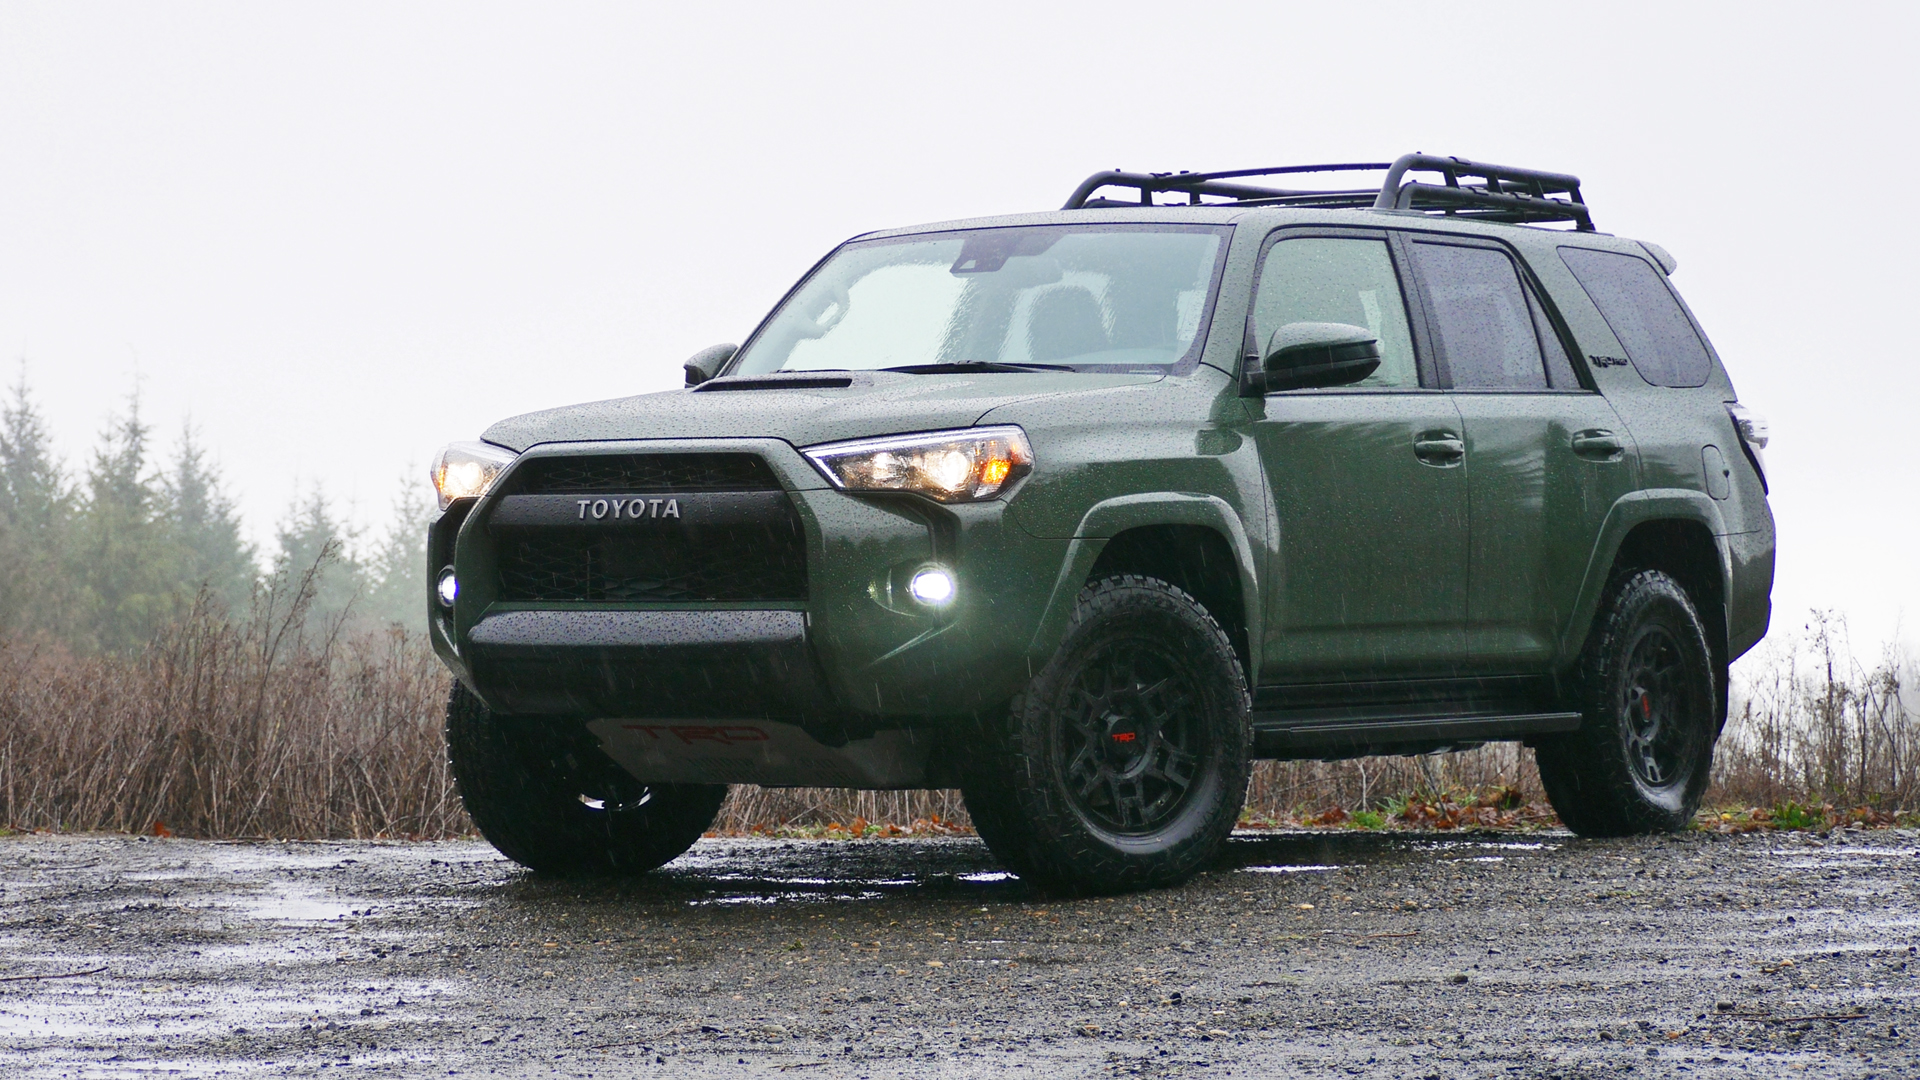 2020 Toyota 4runner Trd Pro Army Green Photo Gallery Autoblog